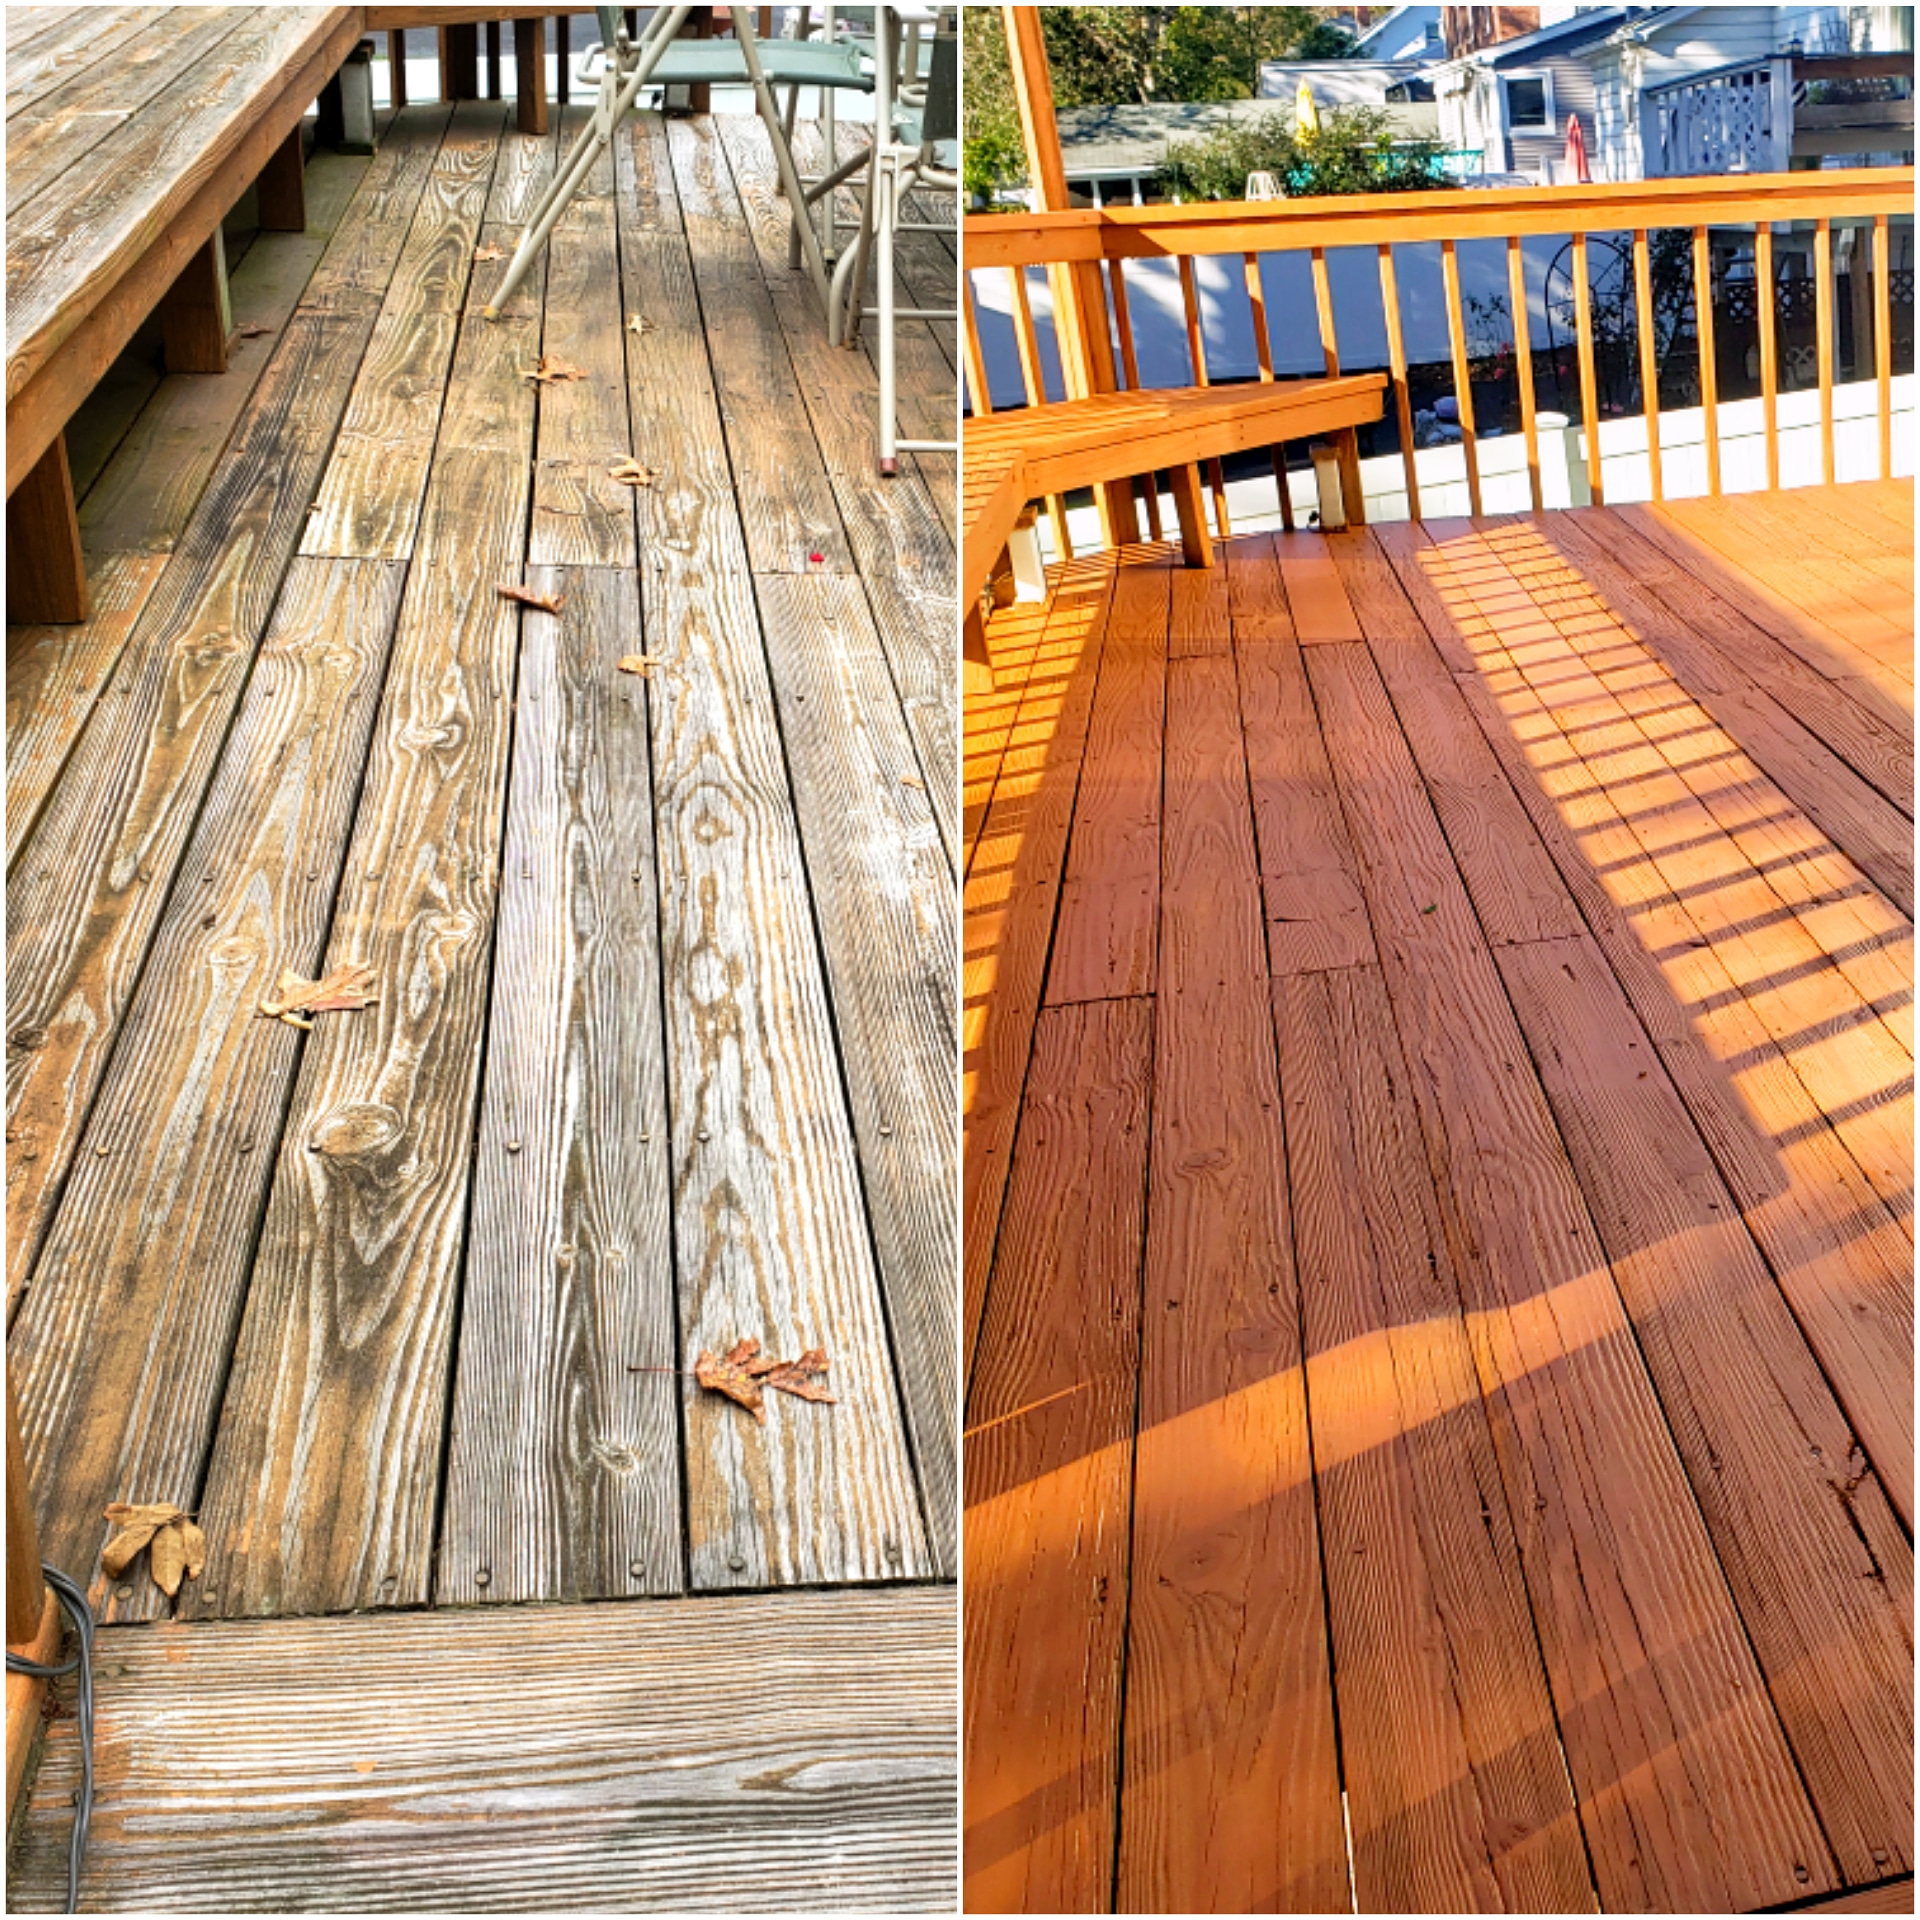 Pressure Washing and Deck restoration